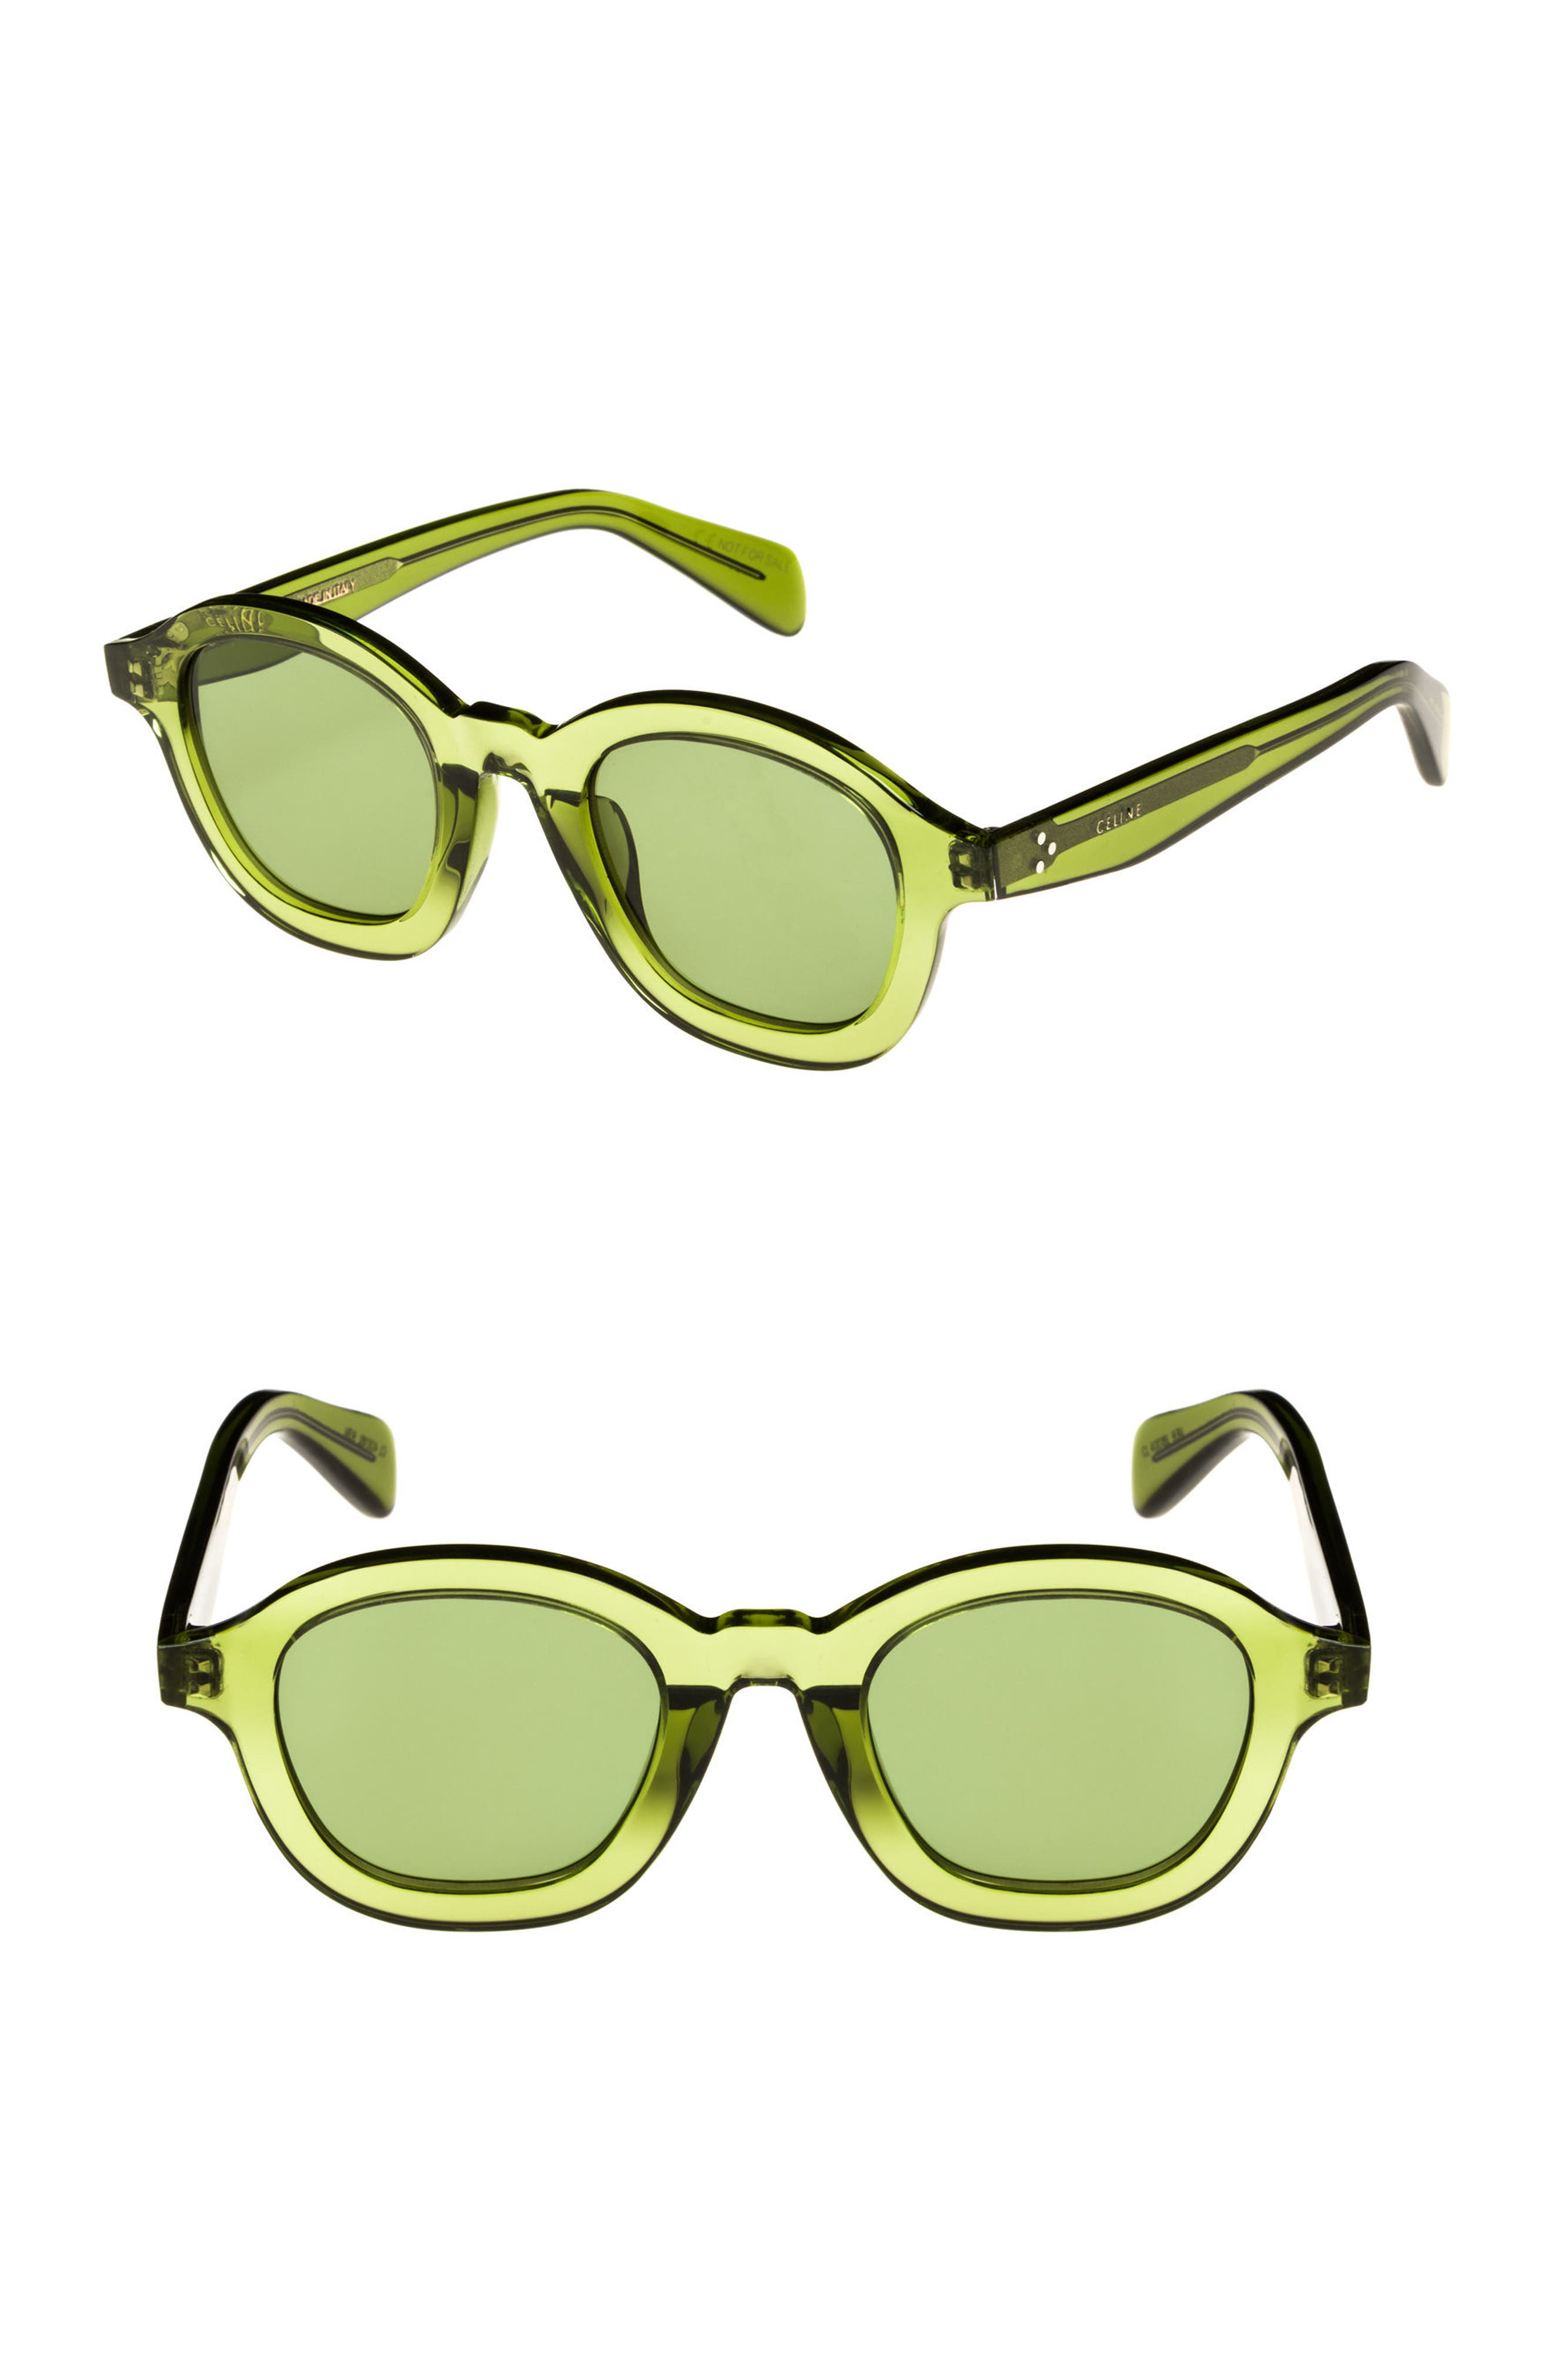 47mm Round Sunglasses,                             Main thumbnail 1, color,                             Green